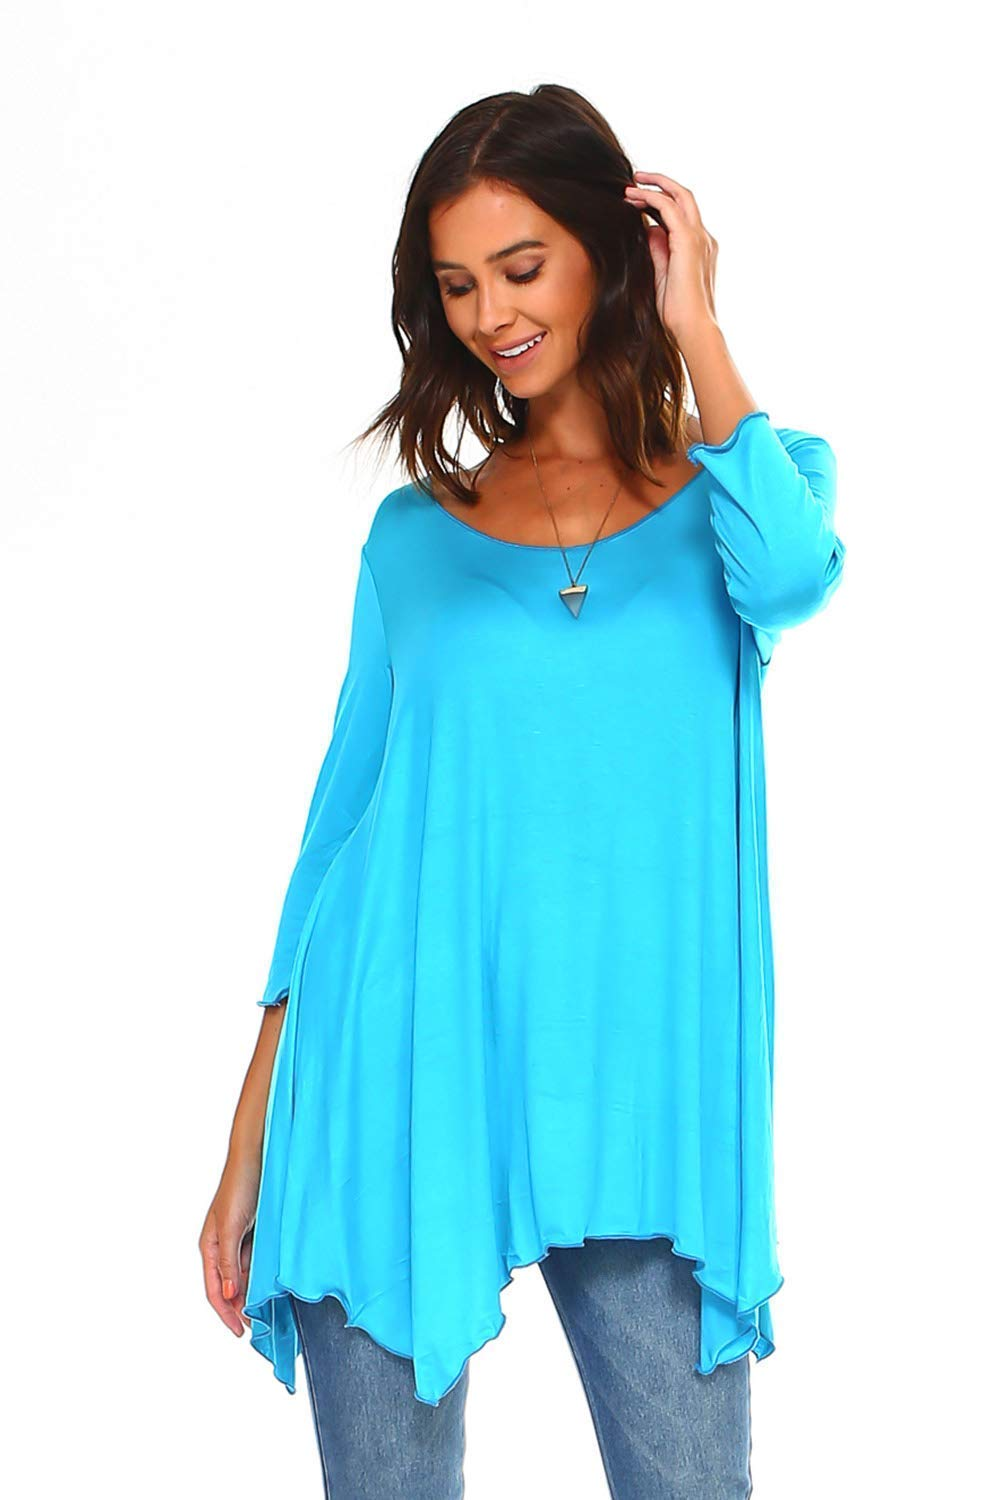 ccee51b1f69 Top1: Simplicitie Women\'s 3/4 Sleeve Loose Fit Flare Swing T Shirt Tunic  Top - Regular and Plus Size - Turquoise - Made in USA